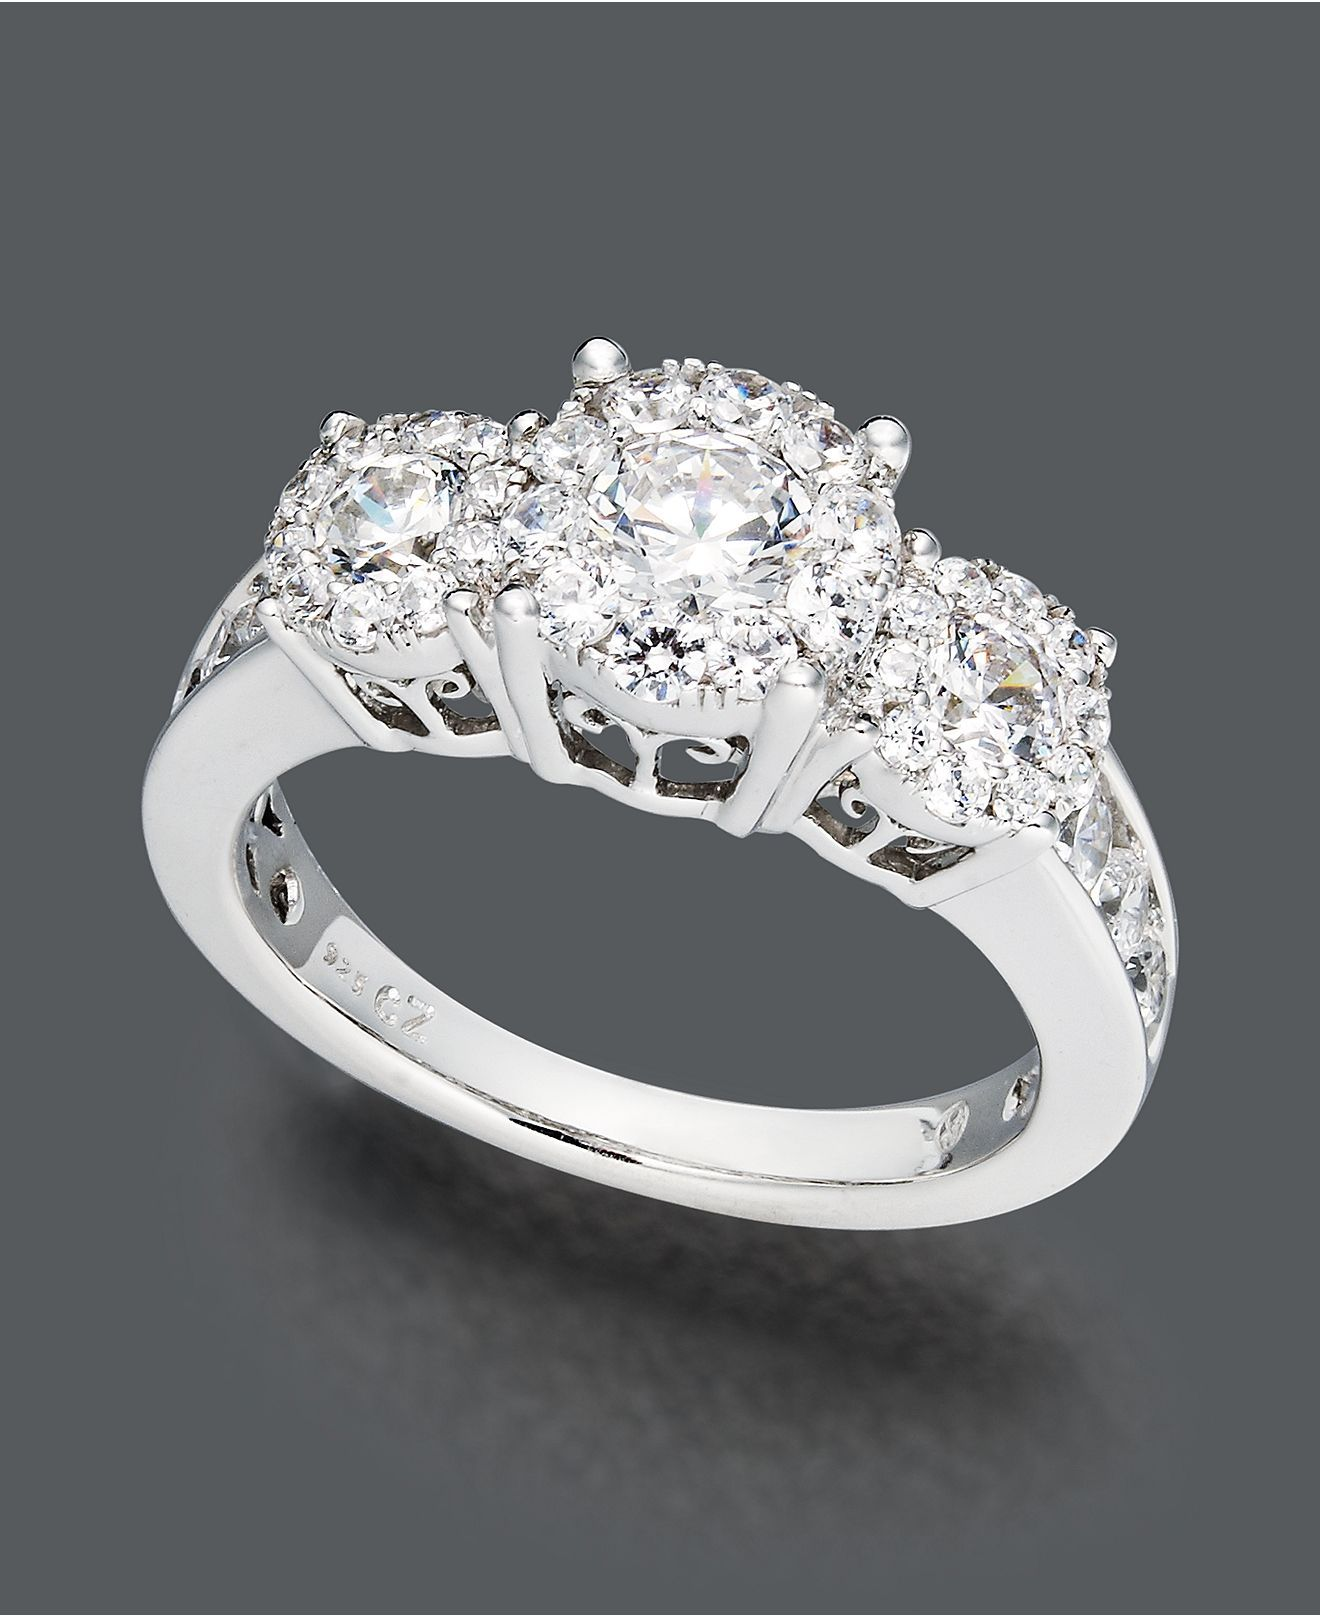 Prestige Unity Diamond Ring 14k White Gold Engagement 2 Ct T W Rings Jewelry Watches Macy S